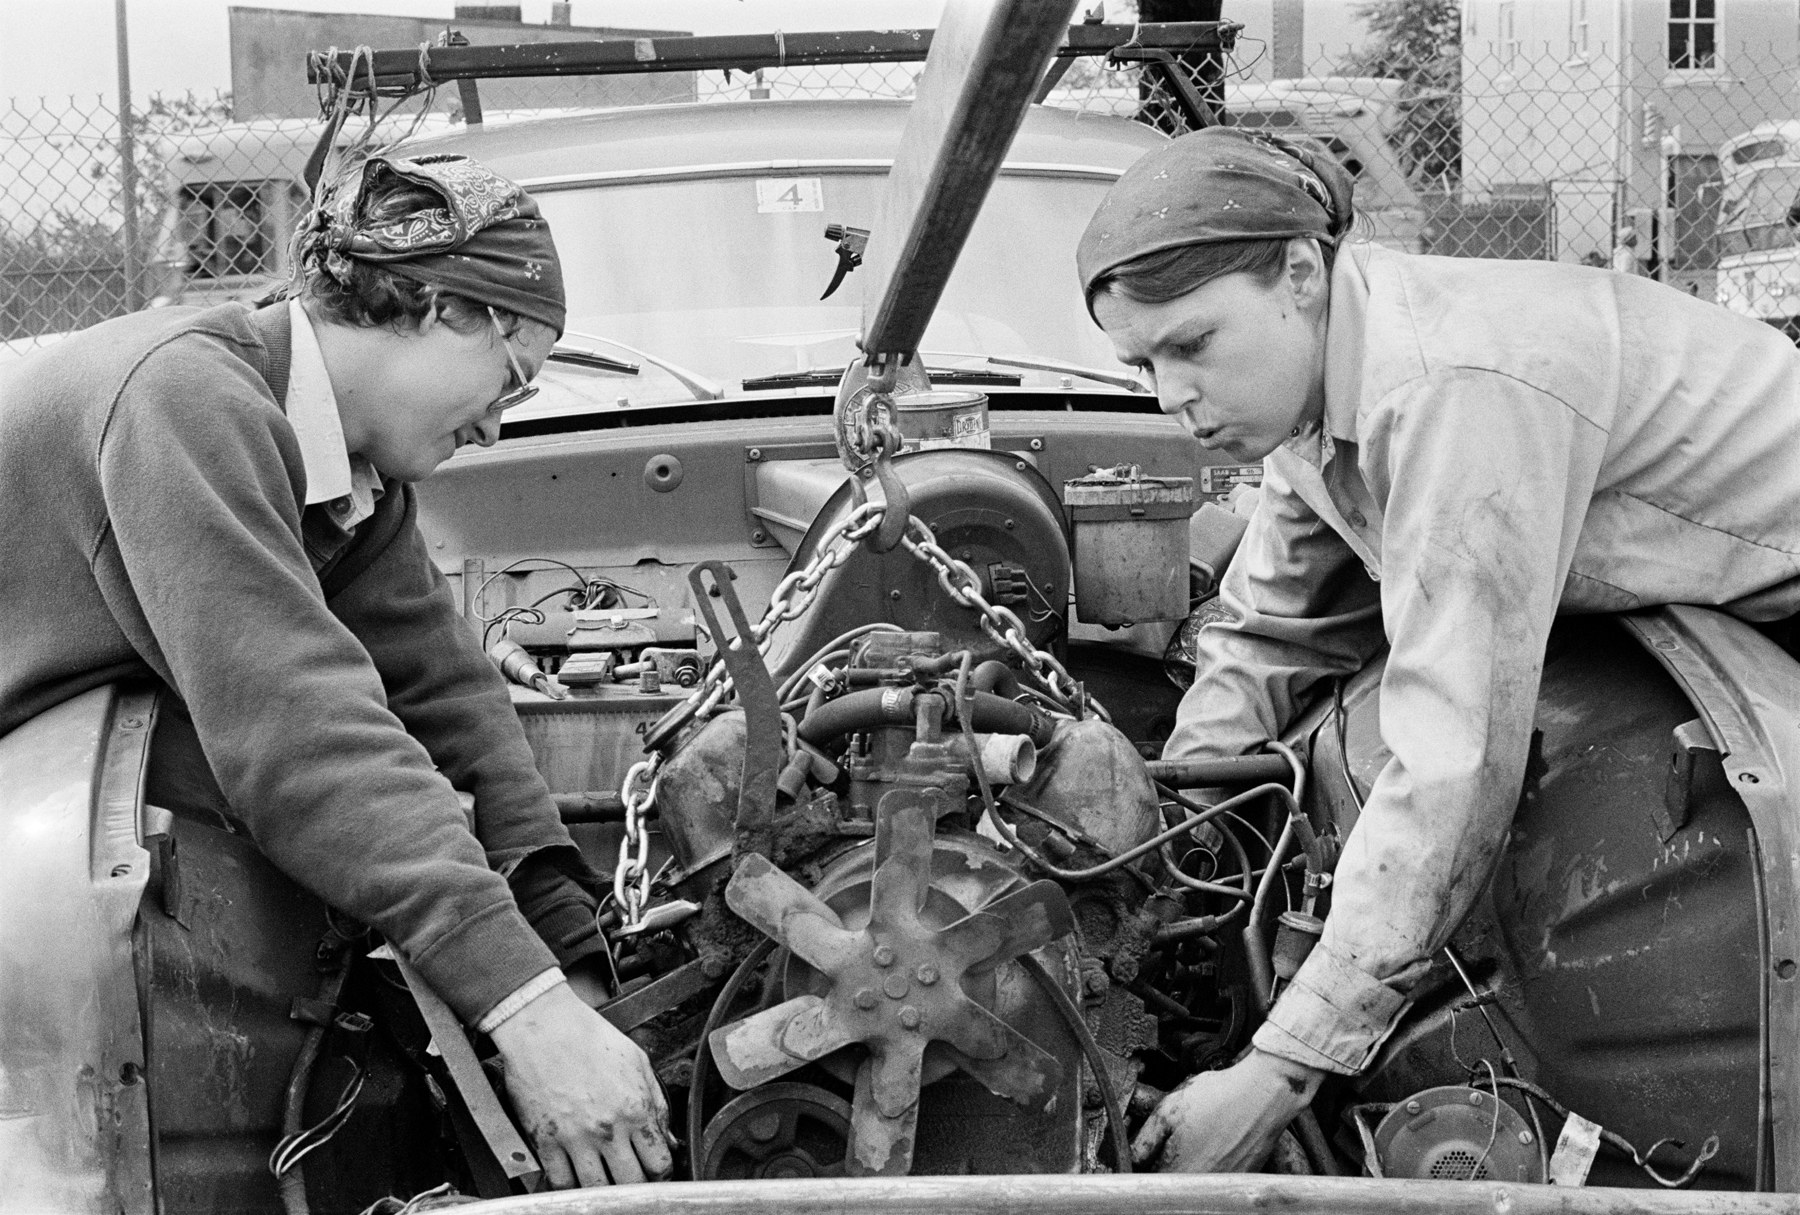 Two women work on a car engine